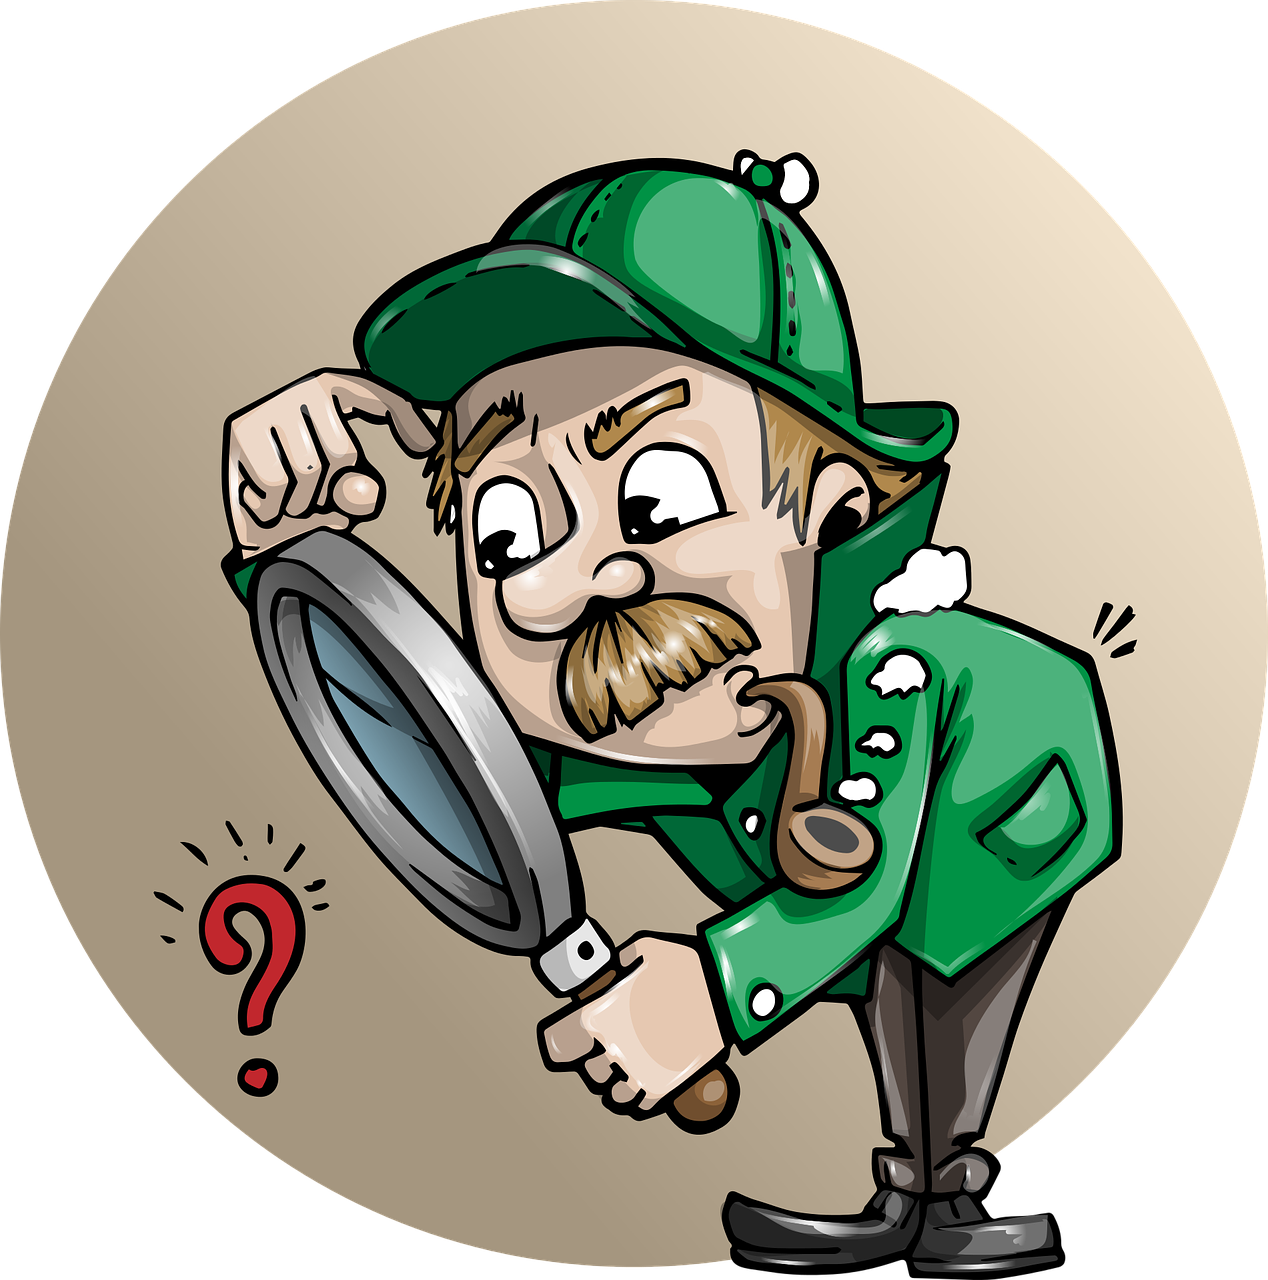 Free clipart book detective clip art black and white What Should I Do If The House I Bought Has Problems? - Jumia House ... clip art black and white